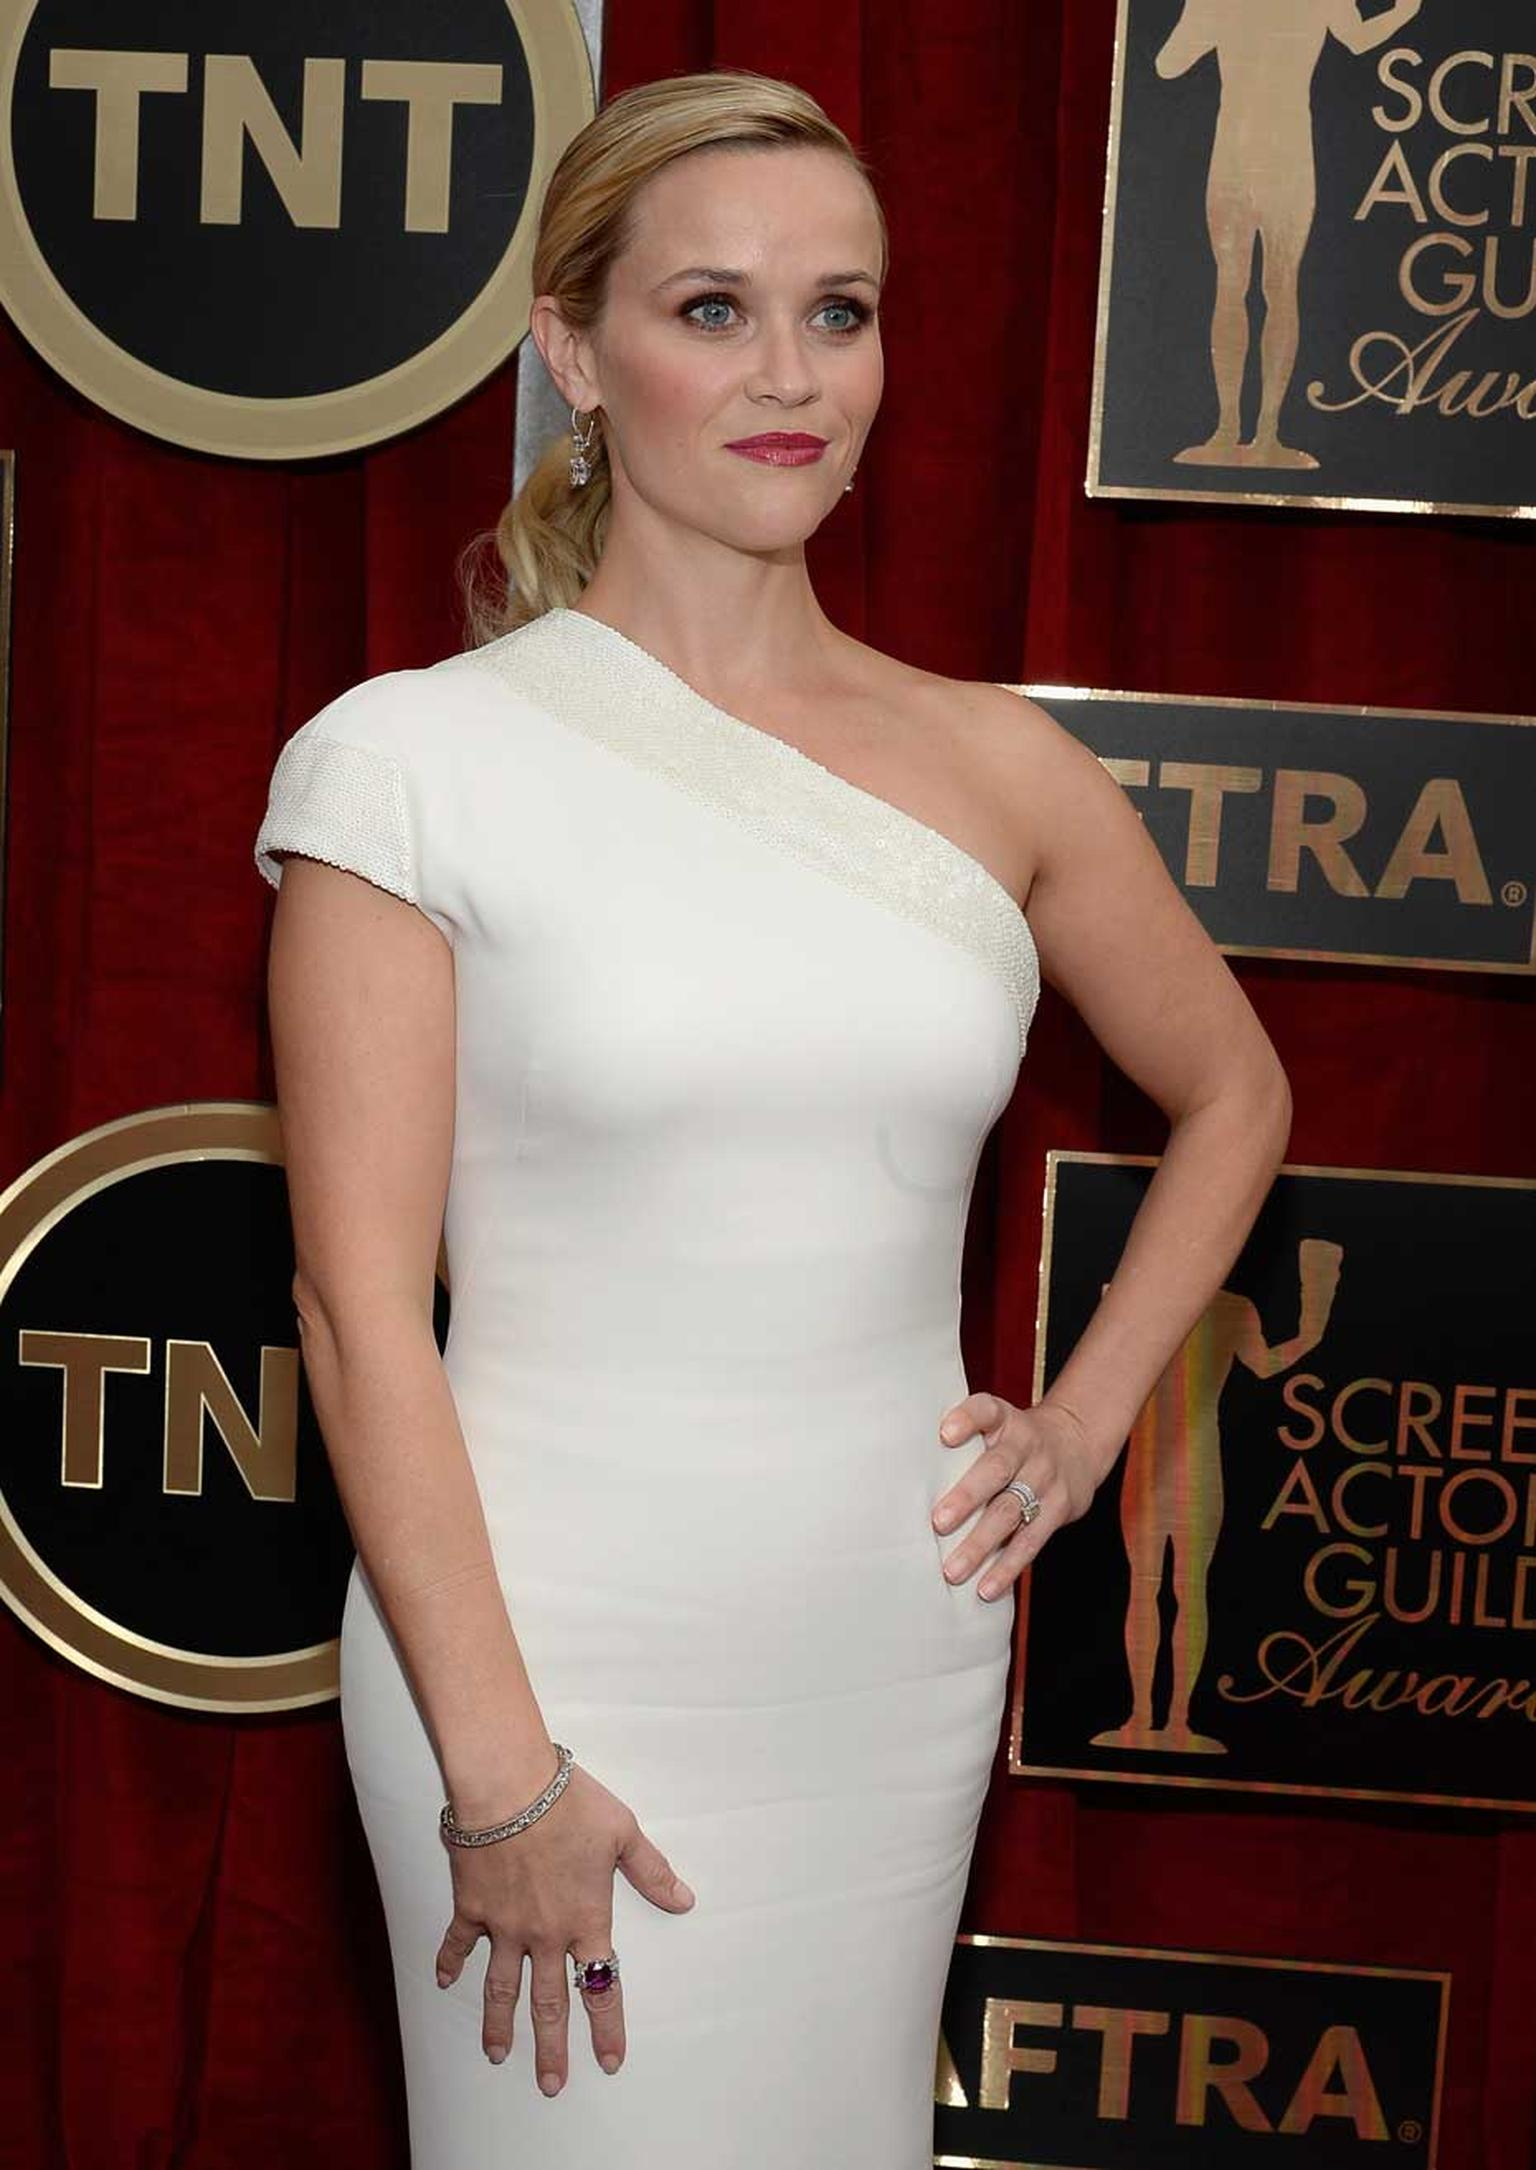 Actress Reese Witherspoon attends the 21st Annual Screen Actors Guild Awards at The Shrine Auditorium on 25 January 2015 in LA wearing more than $3.5 million worth of Harry Winston diamonds. (Kevork Djansezian/Getty Images)